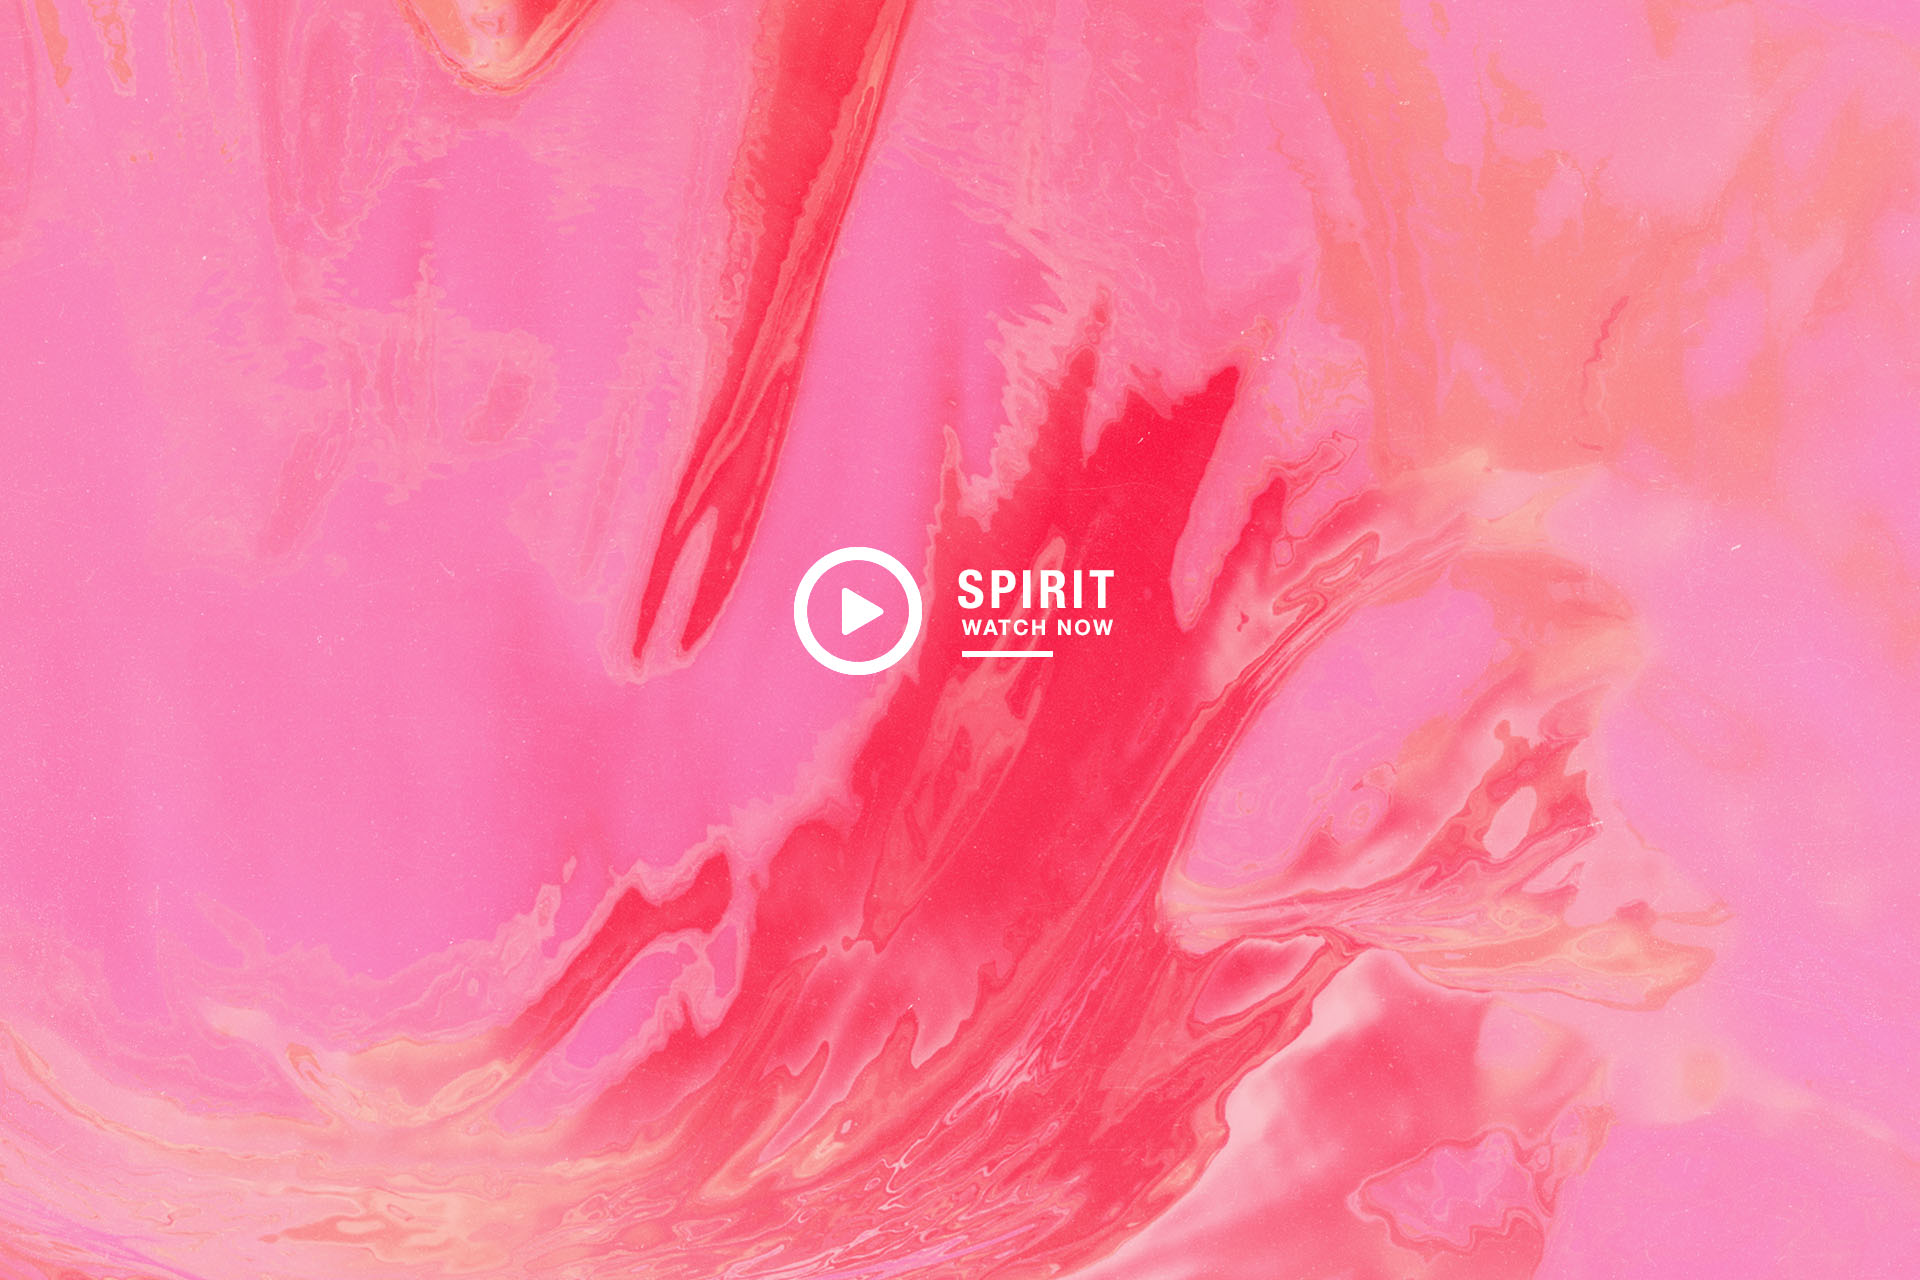 Majid Jordan - Spirit - Official Audio